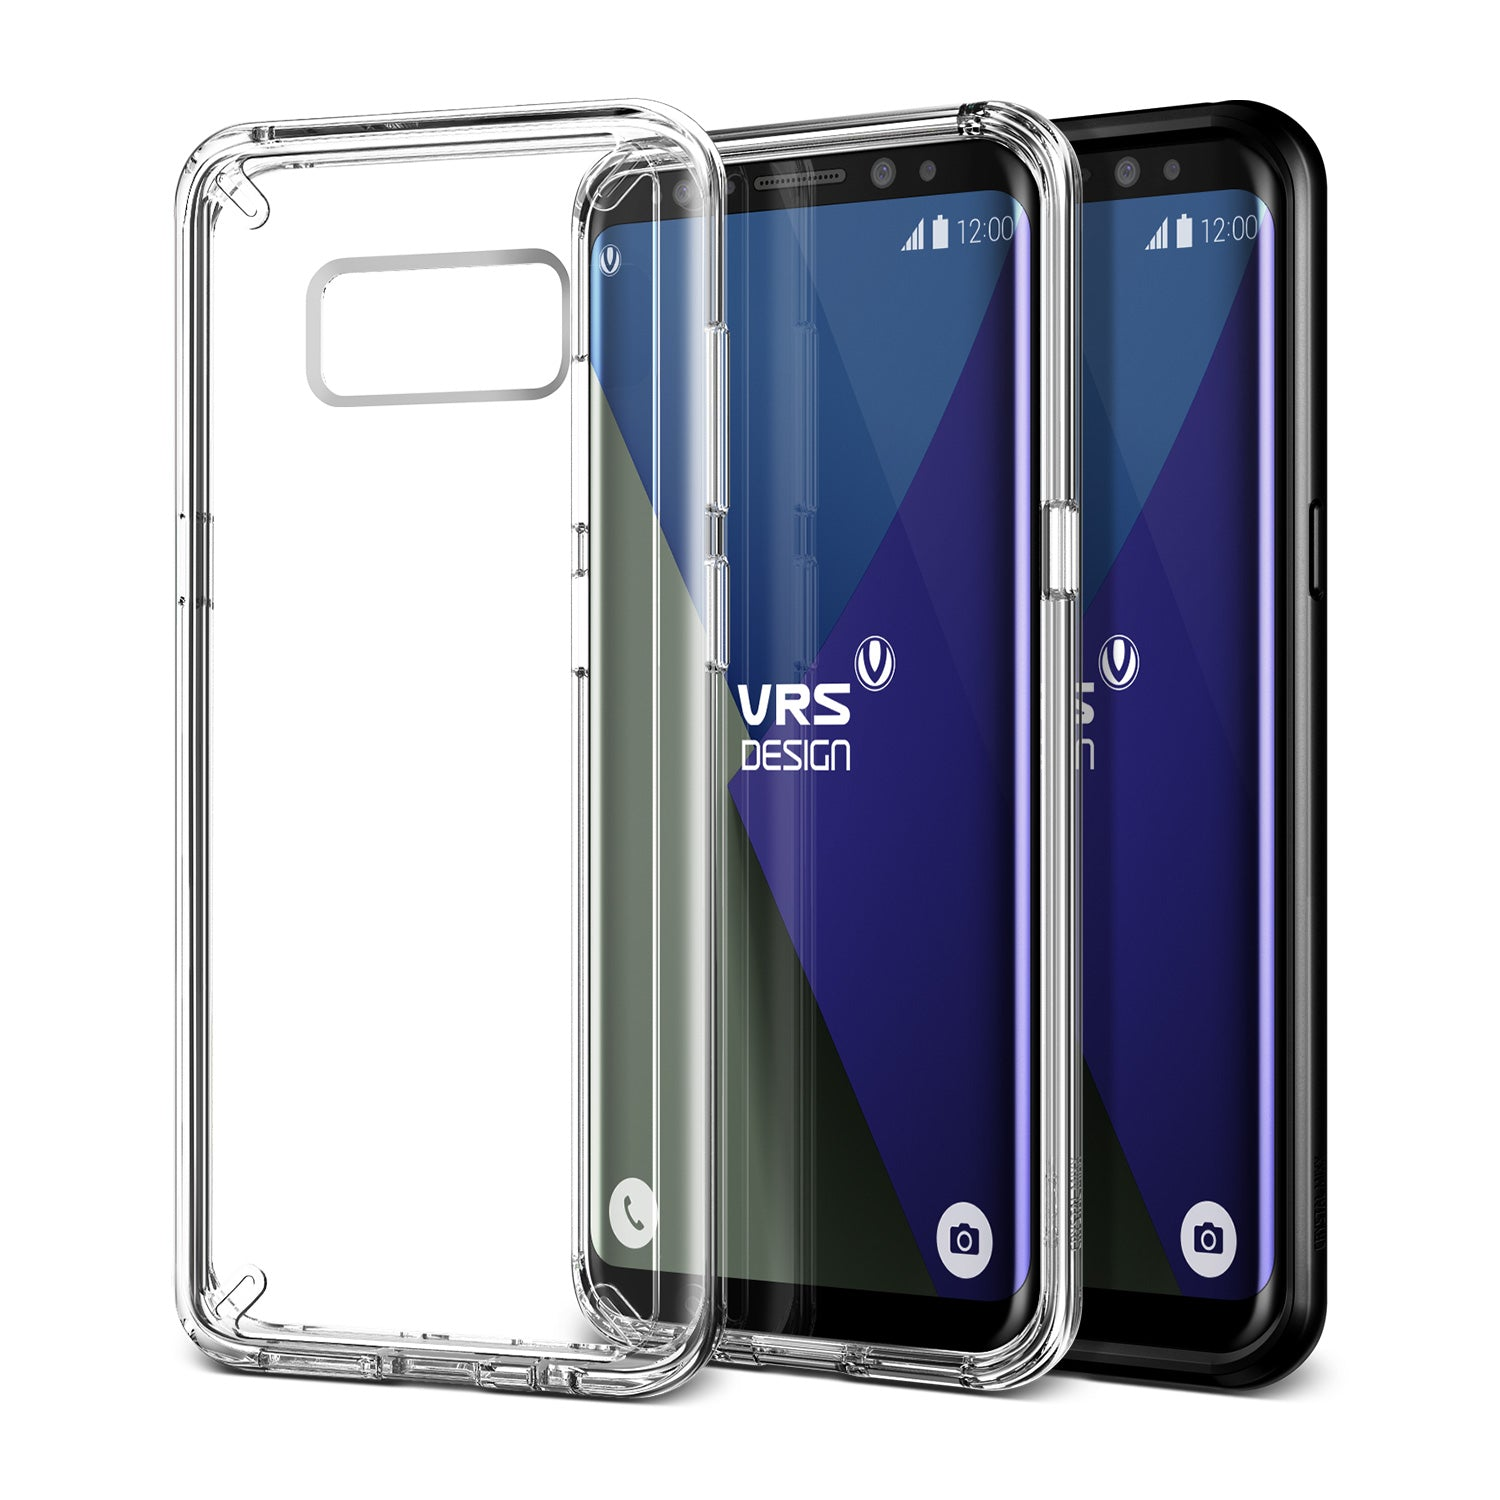 Crystal Mixx Galaxy S8 case from VRS Design